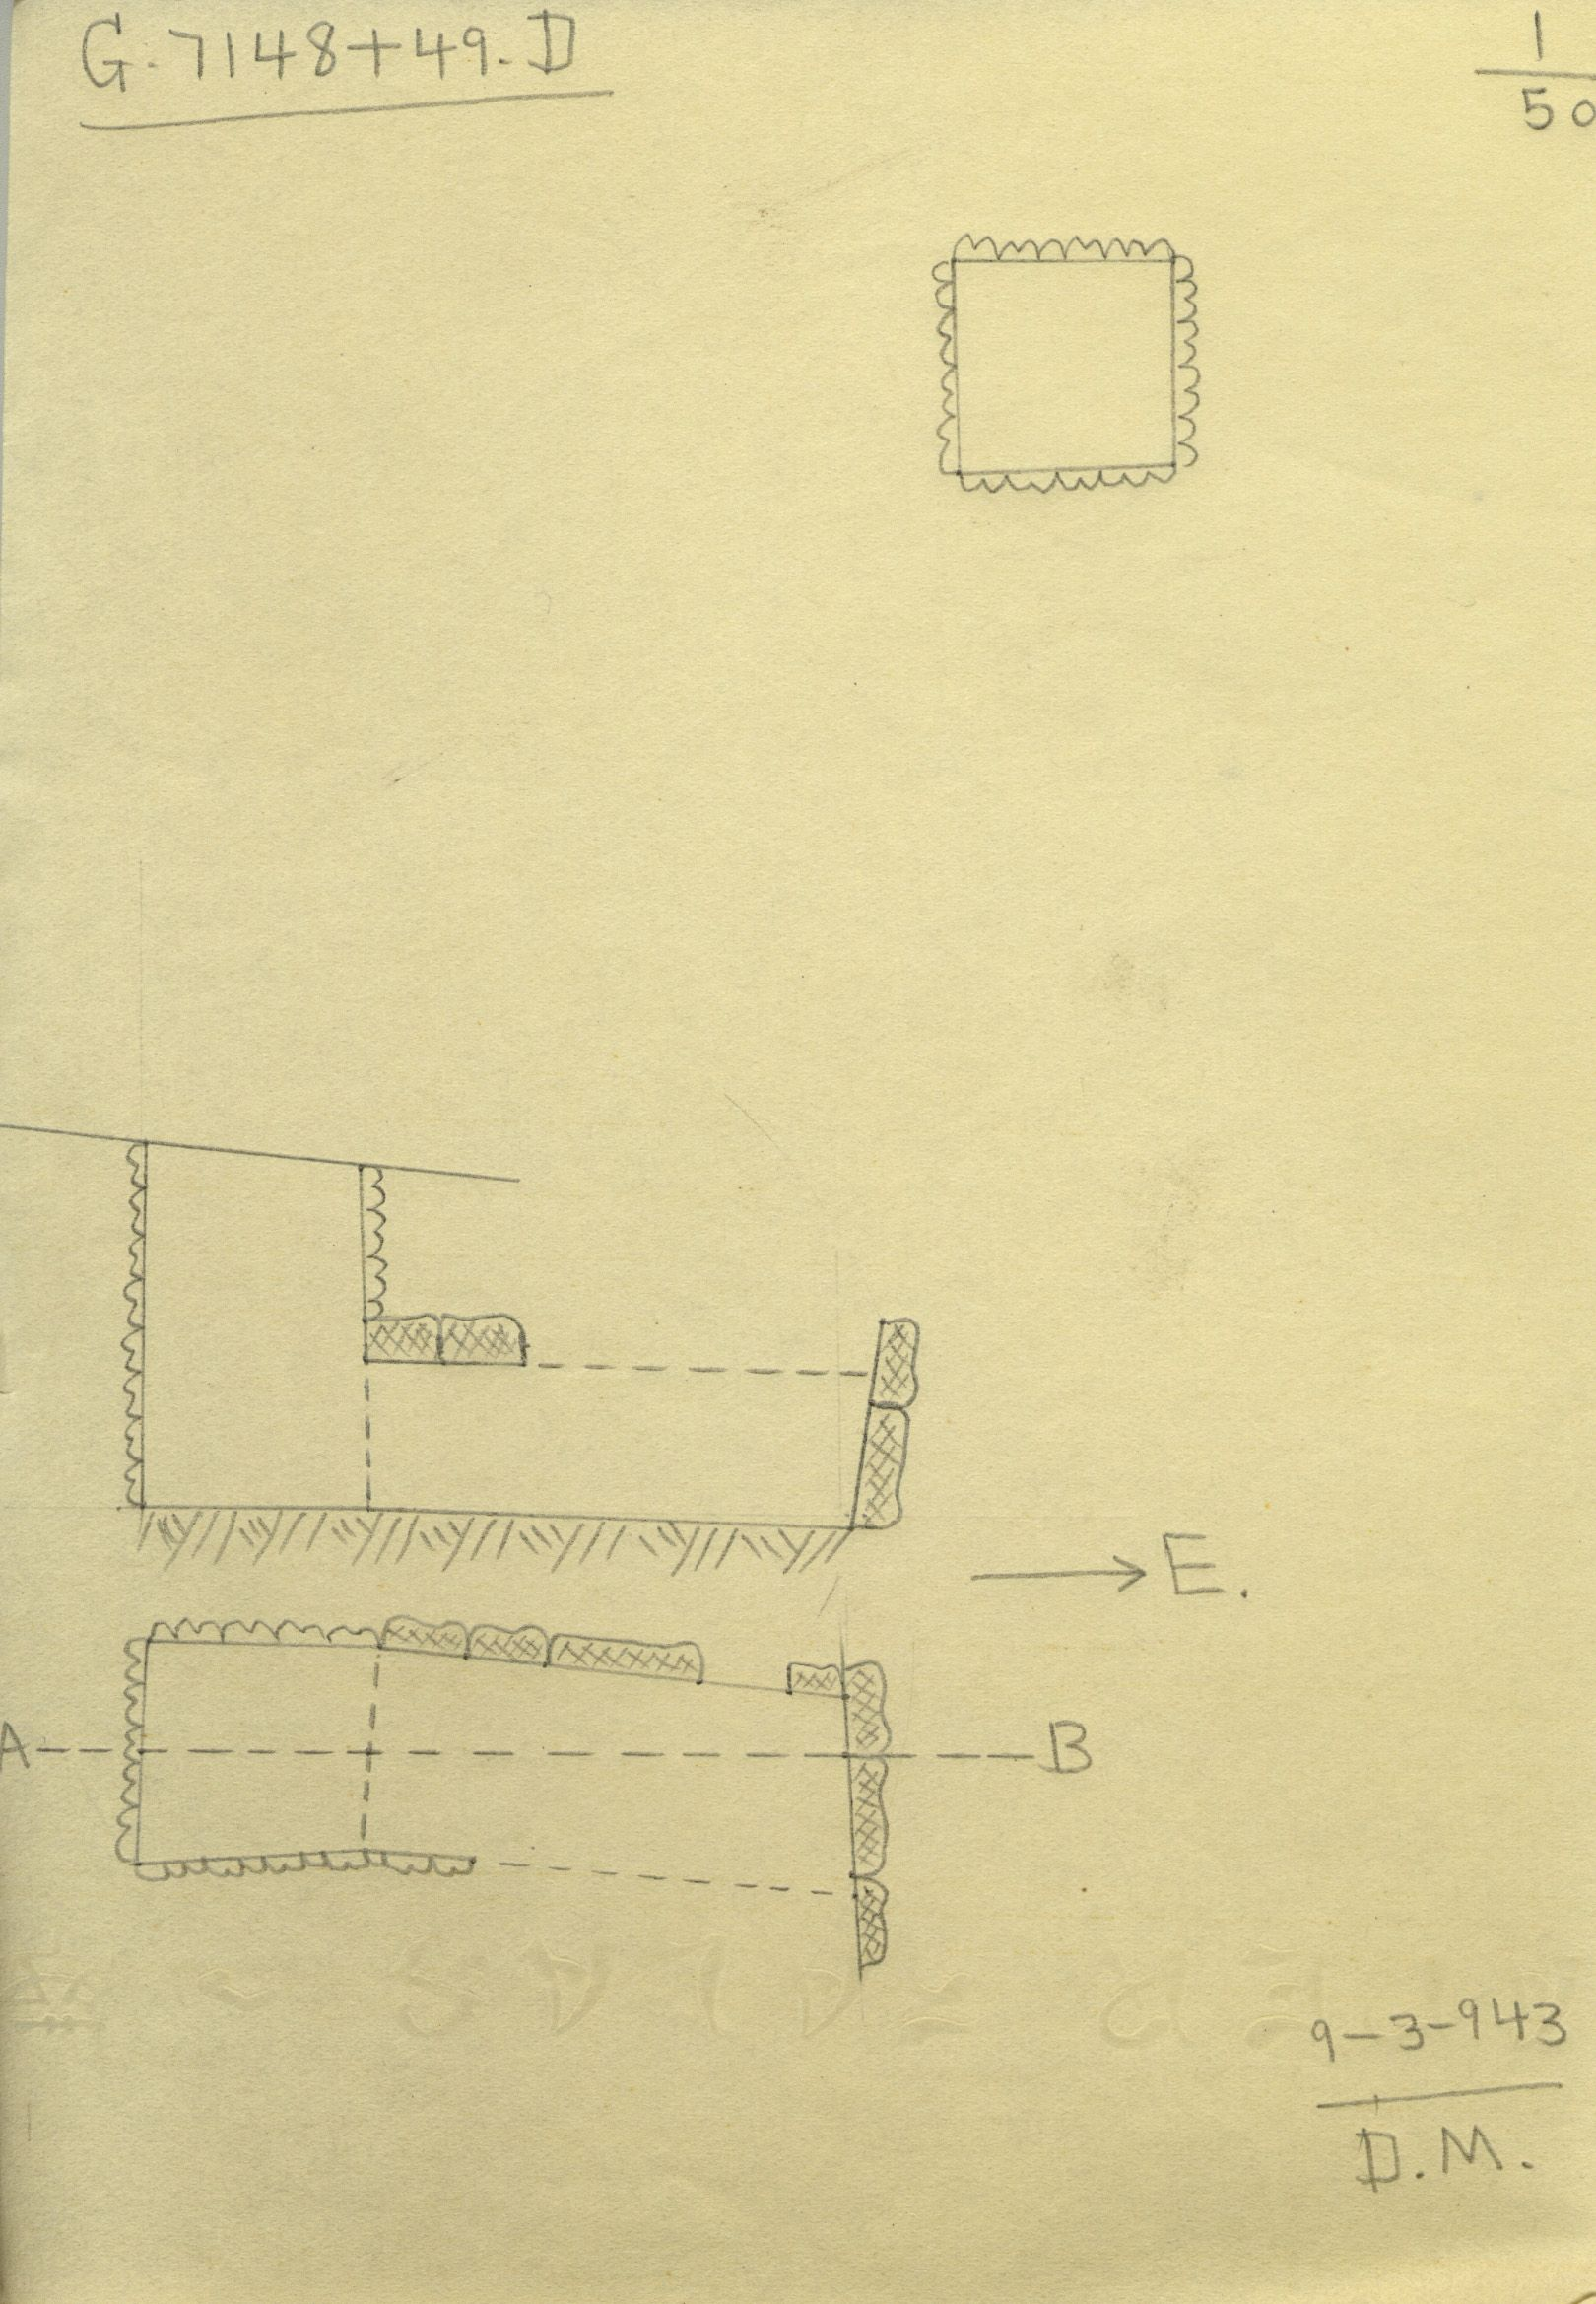 Maps and plans: G 7148+7149: G 7148, Shaft D